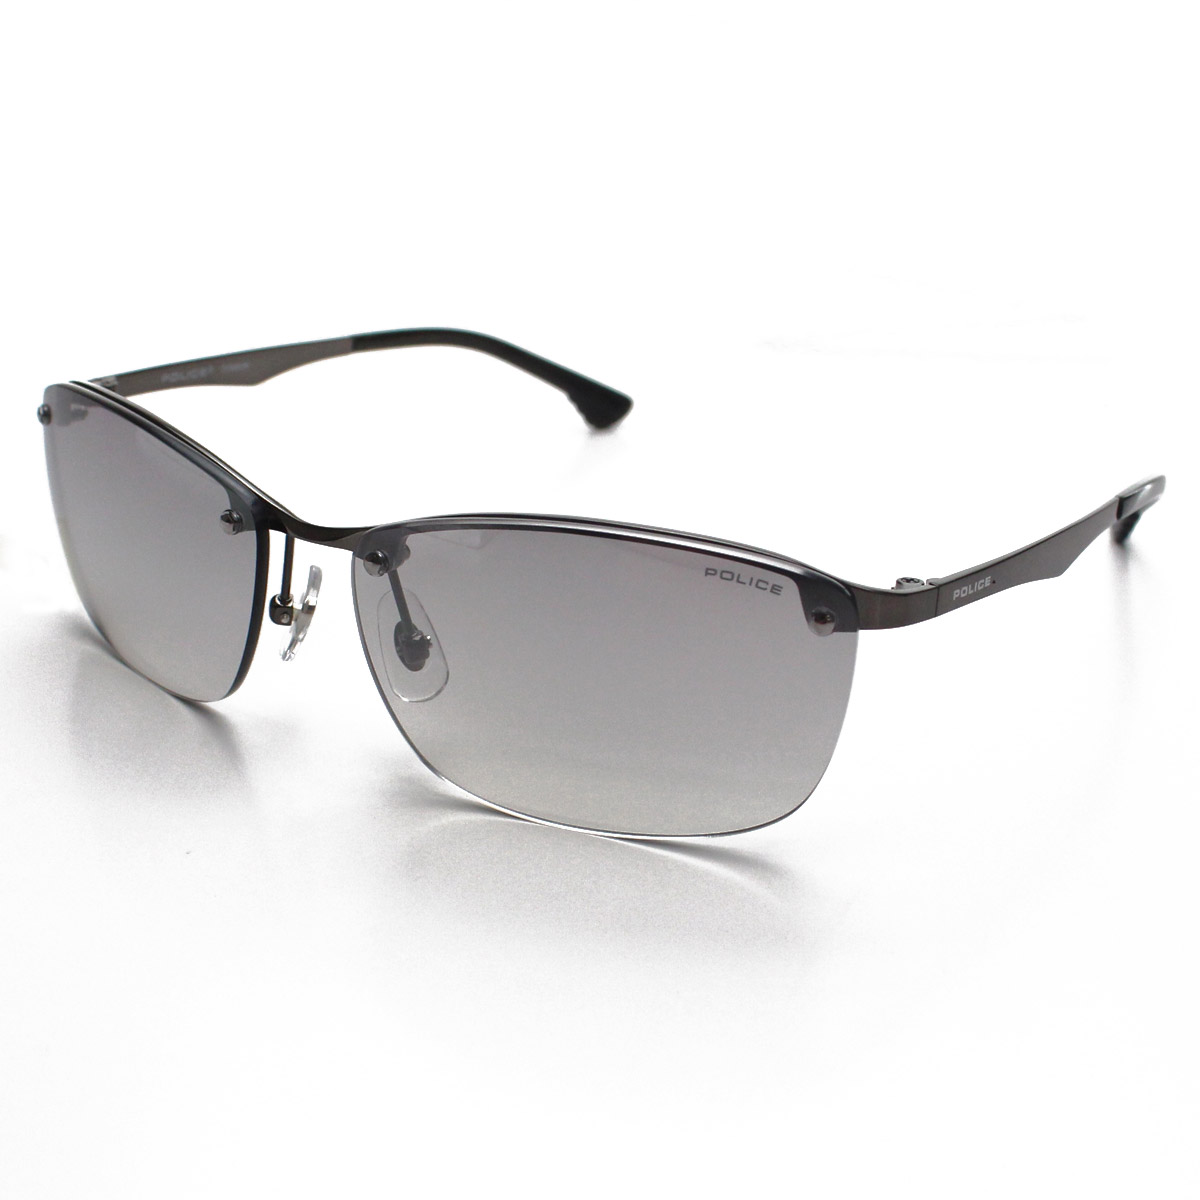 cd61084f16be Bighit The total brand wholesale: Police POLICE STORM storm Ney roll  sunglasses and others 745J 568S black | Rakuten Global Market